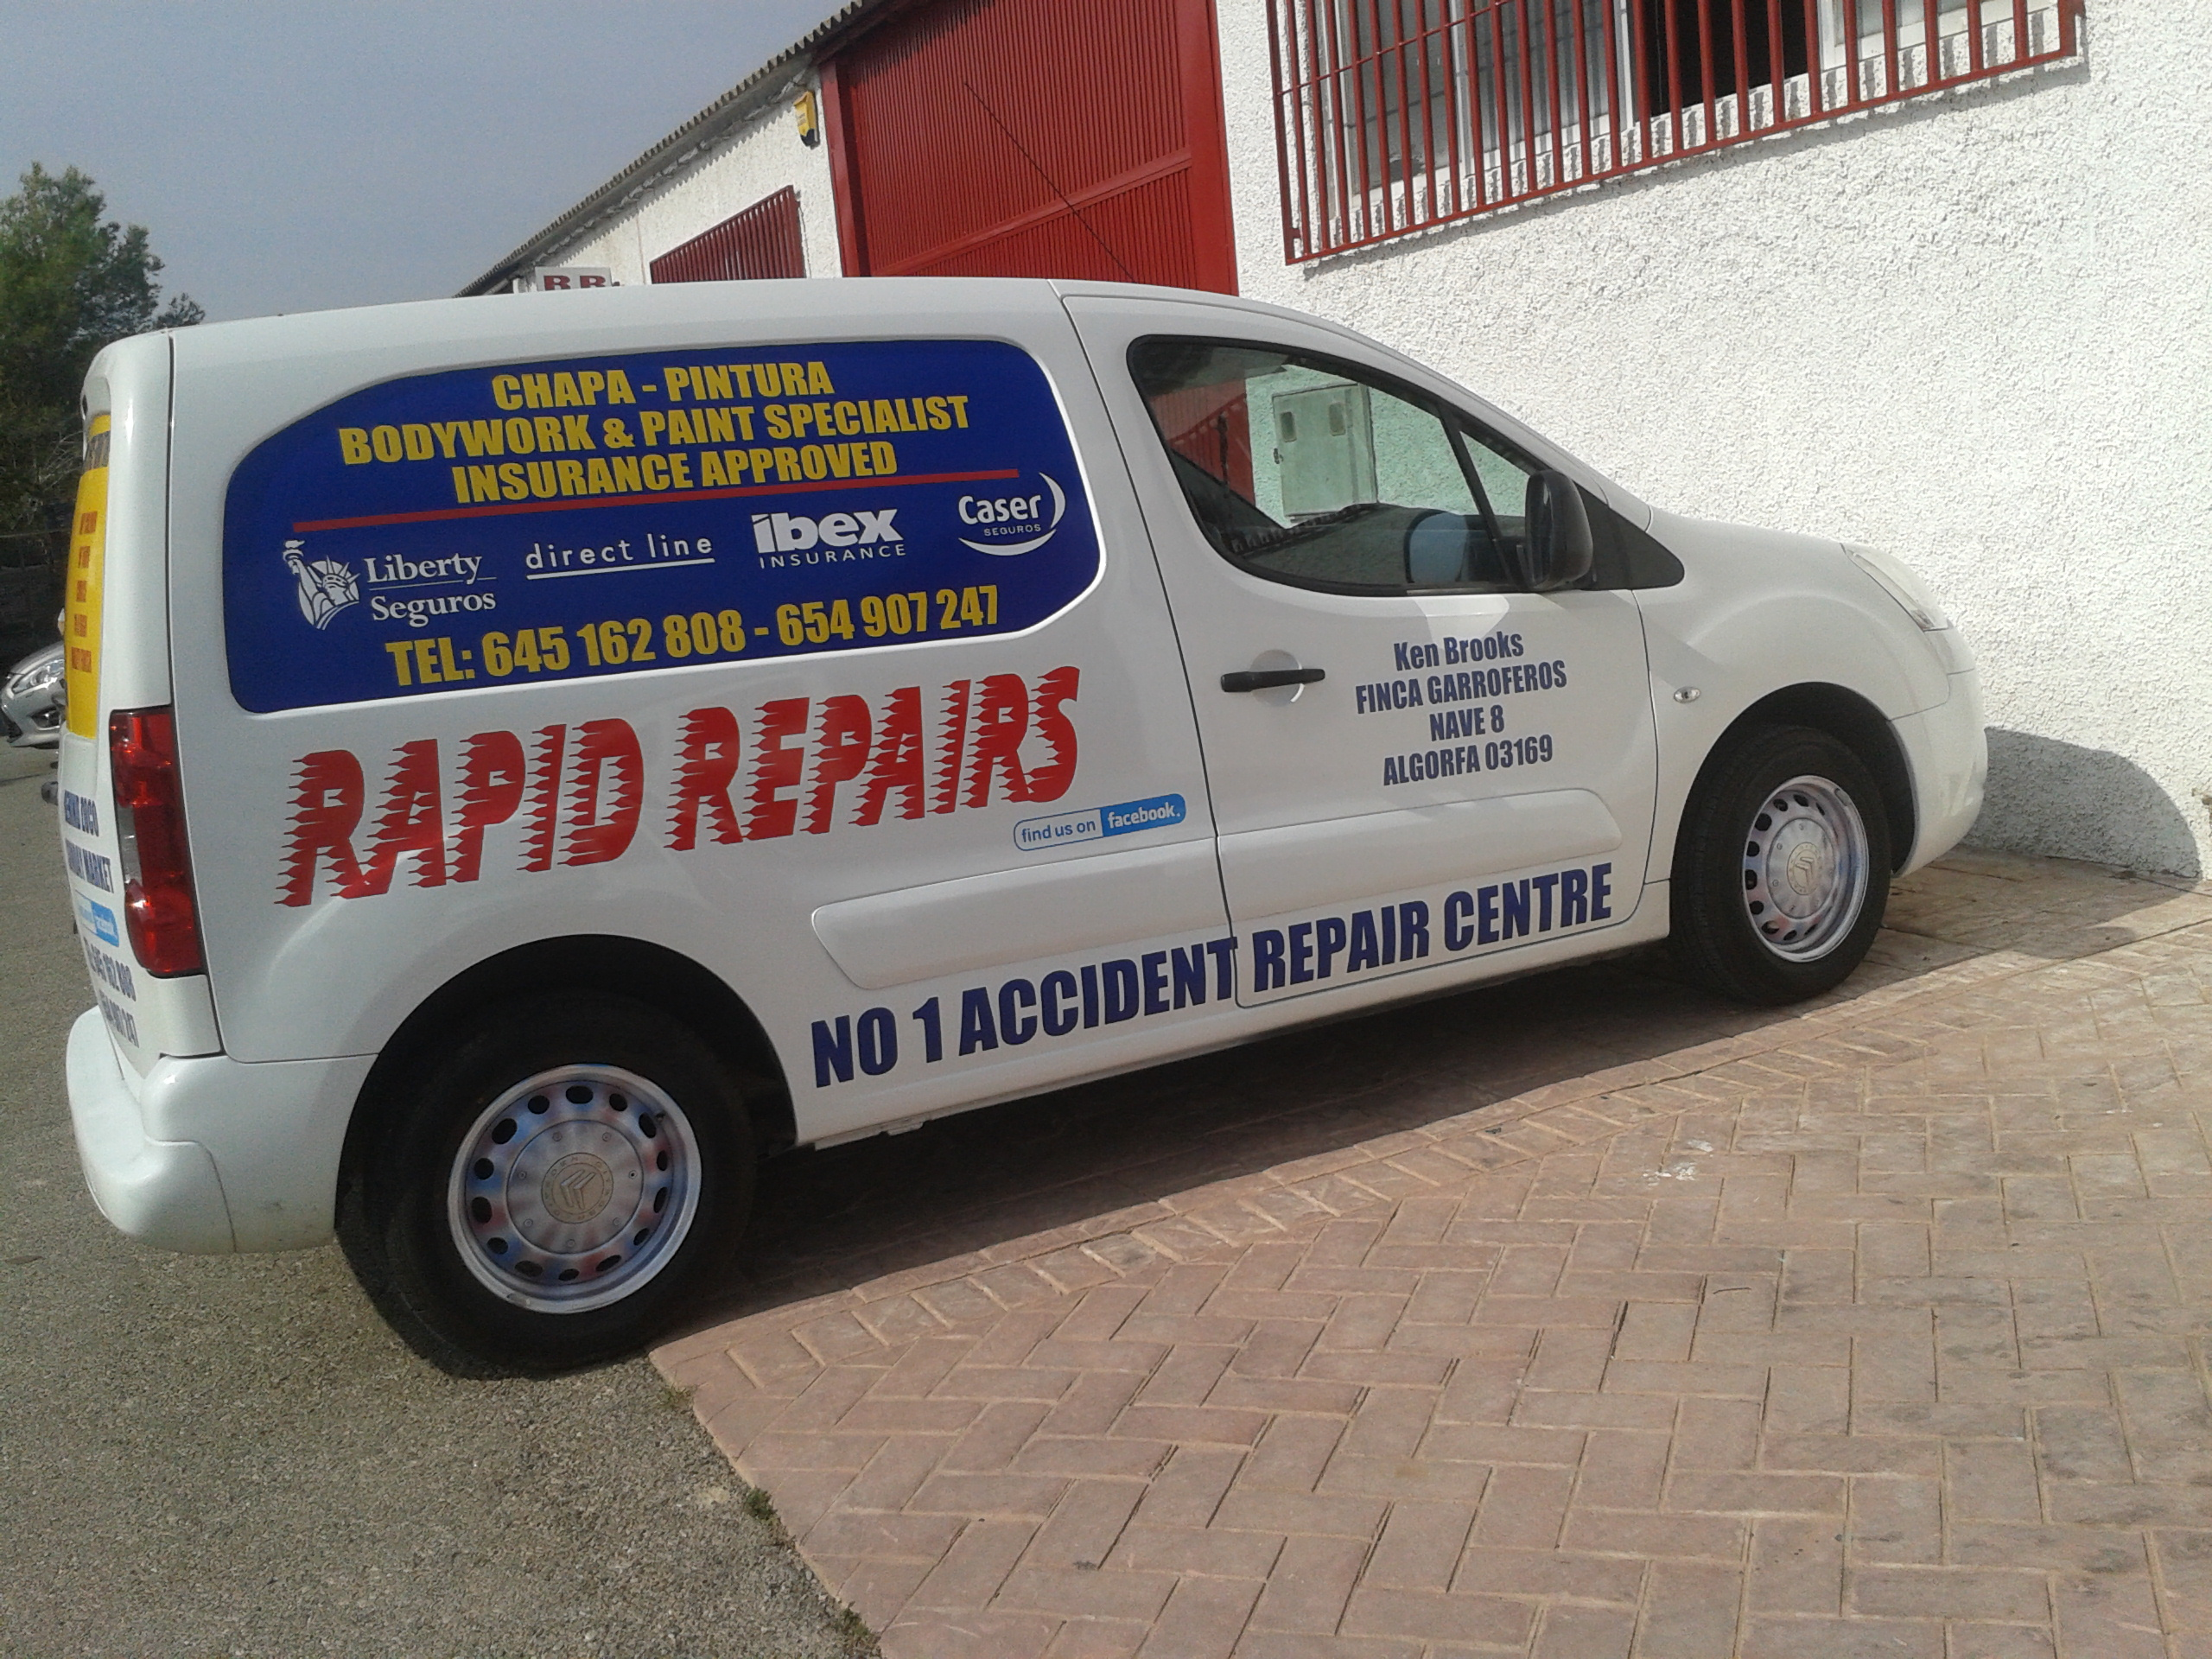 Rapid Repairs Bodywork and Paint Specialist